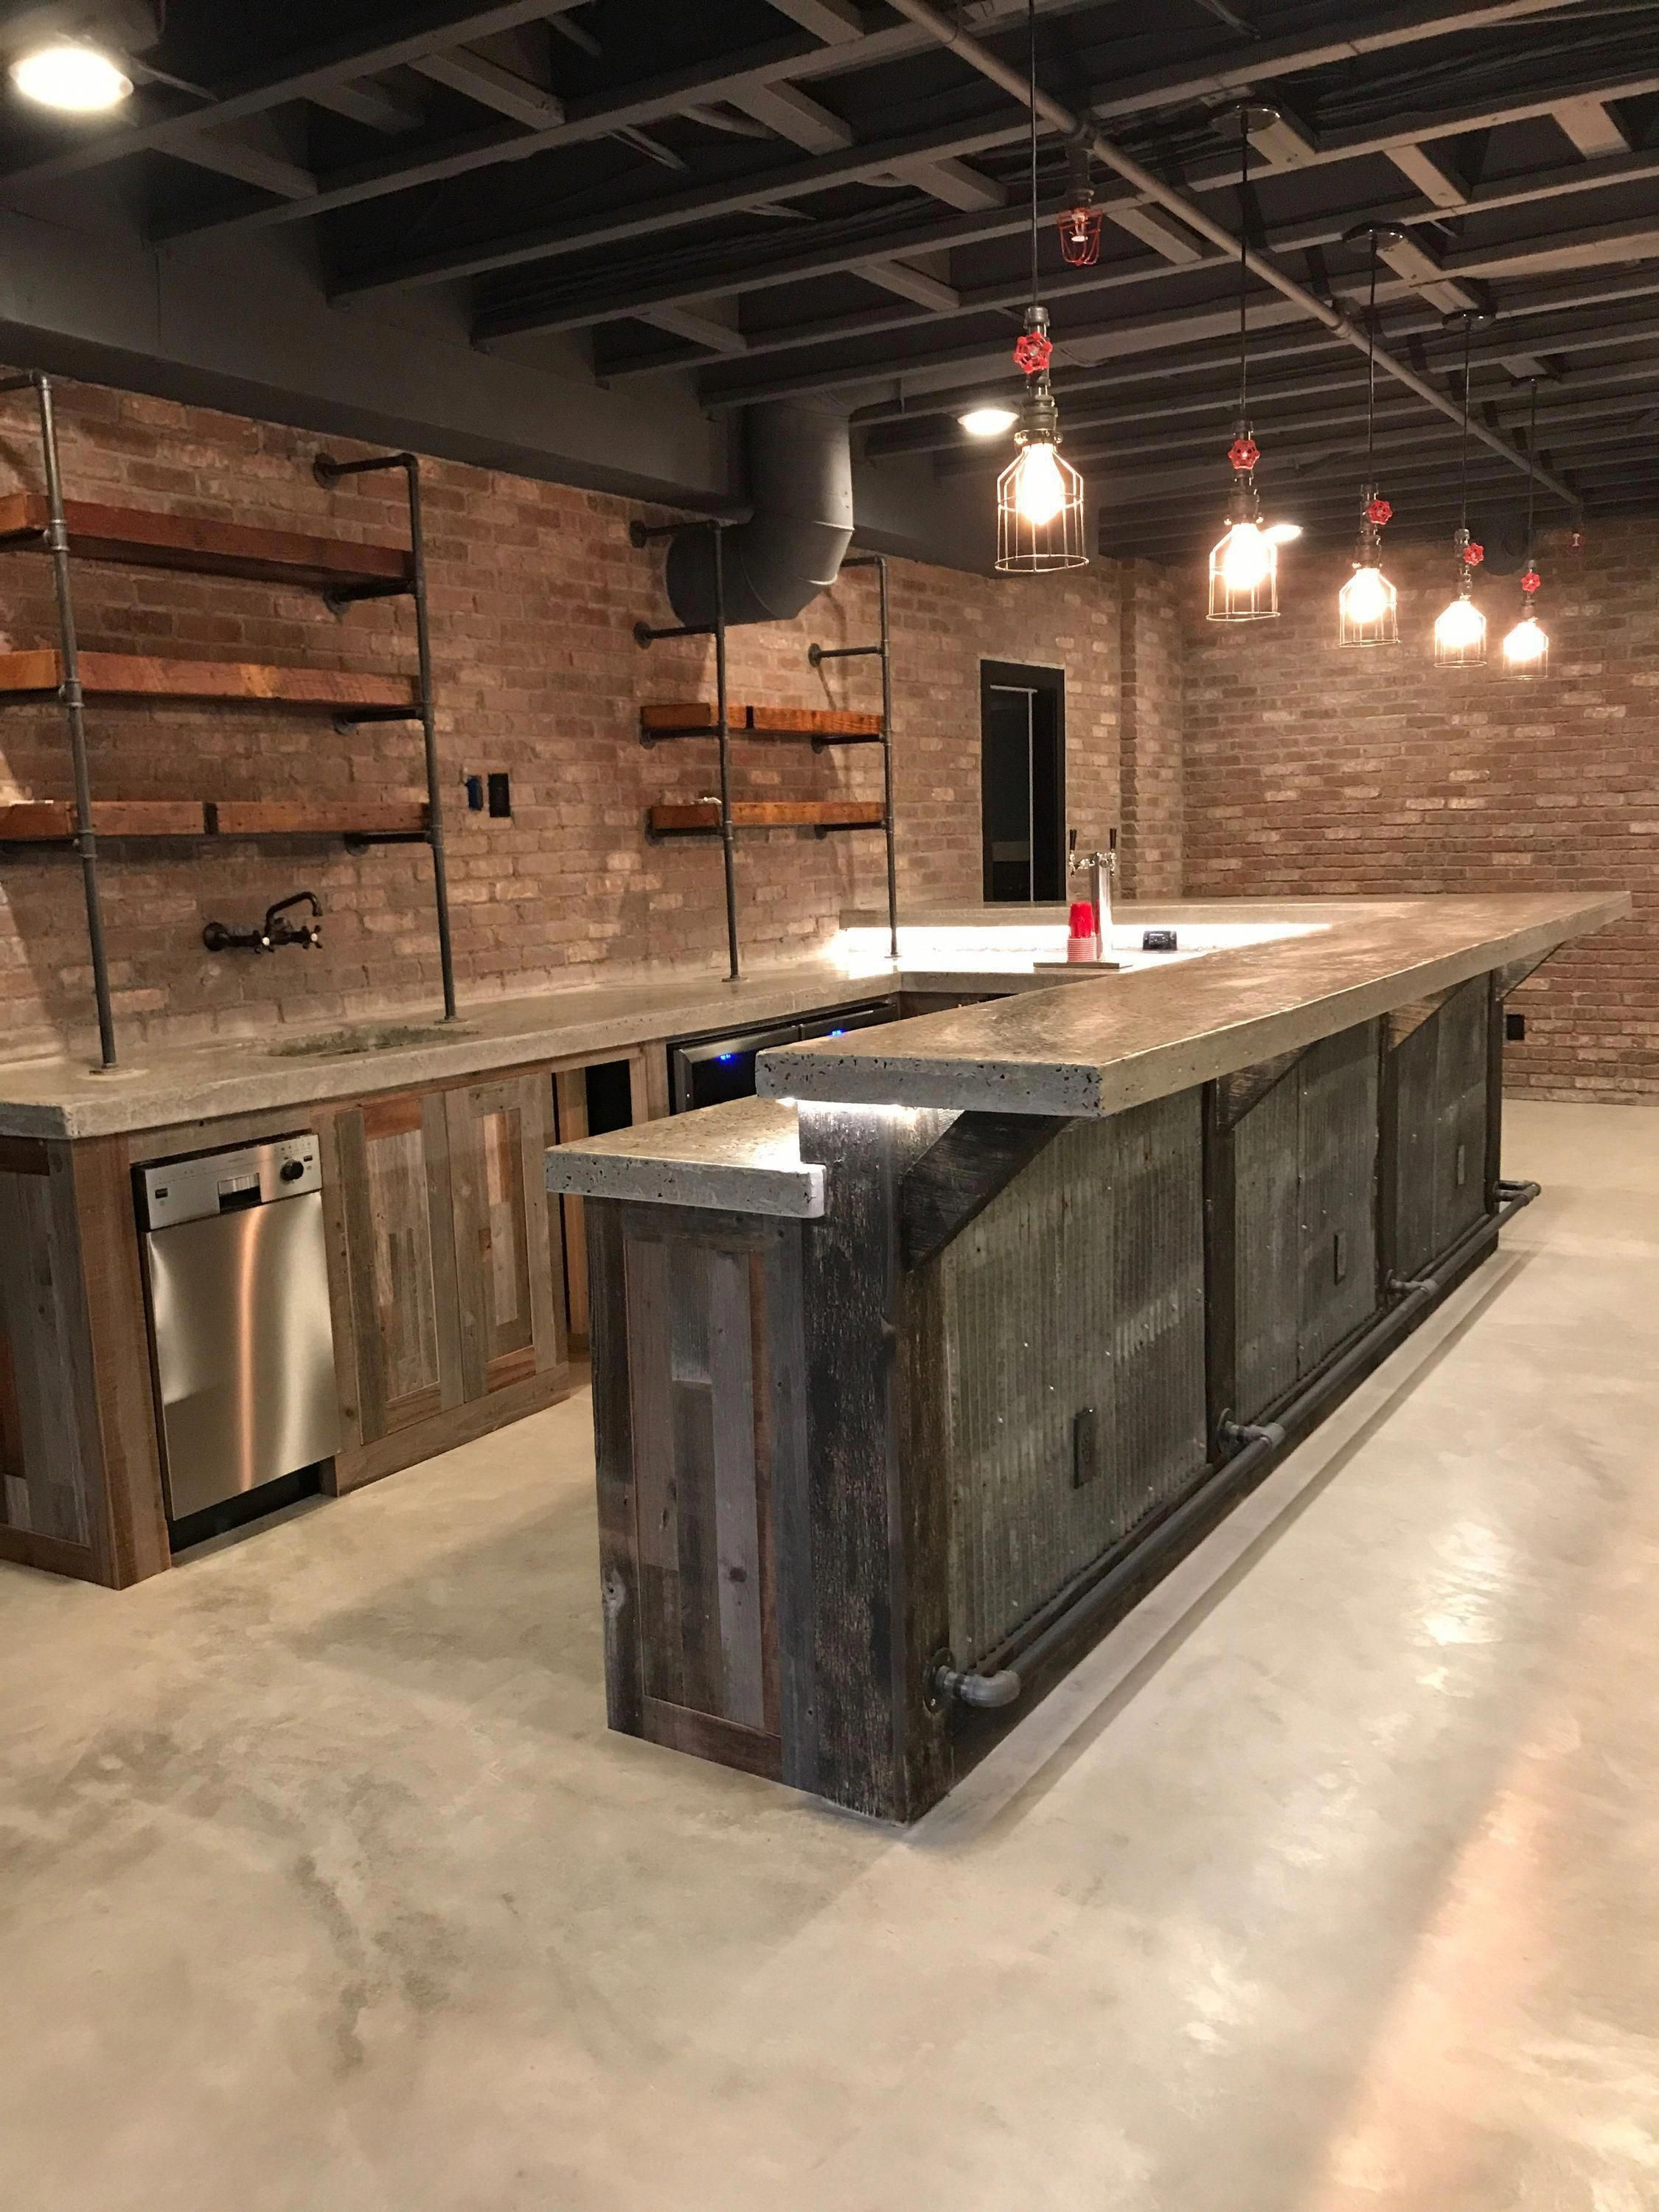 Basement Reno Ideas Small Basement Family Room Ideas Cool Basement Ideas For Teenagers 20190210 Basement Bar Design Industrial Basement Bar Rustic Basement